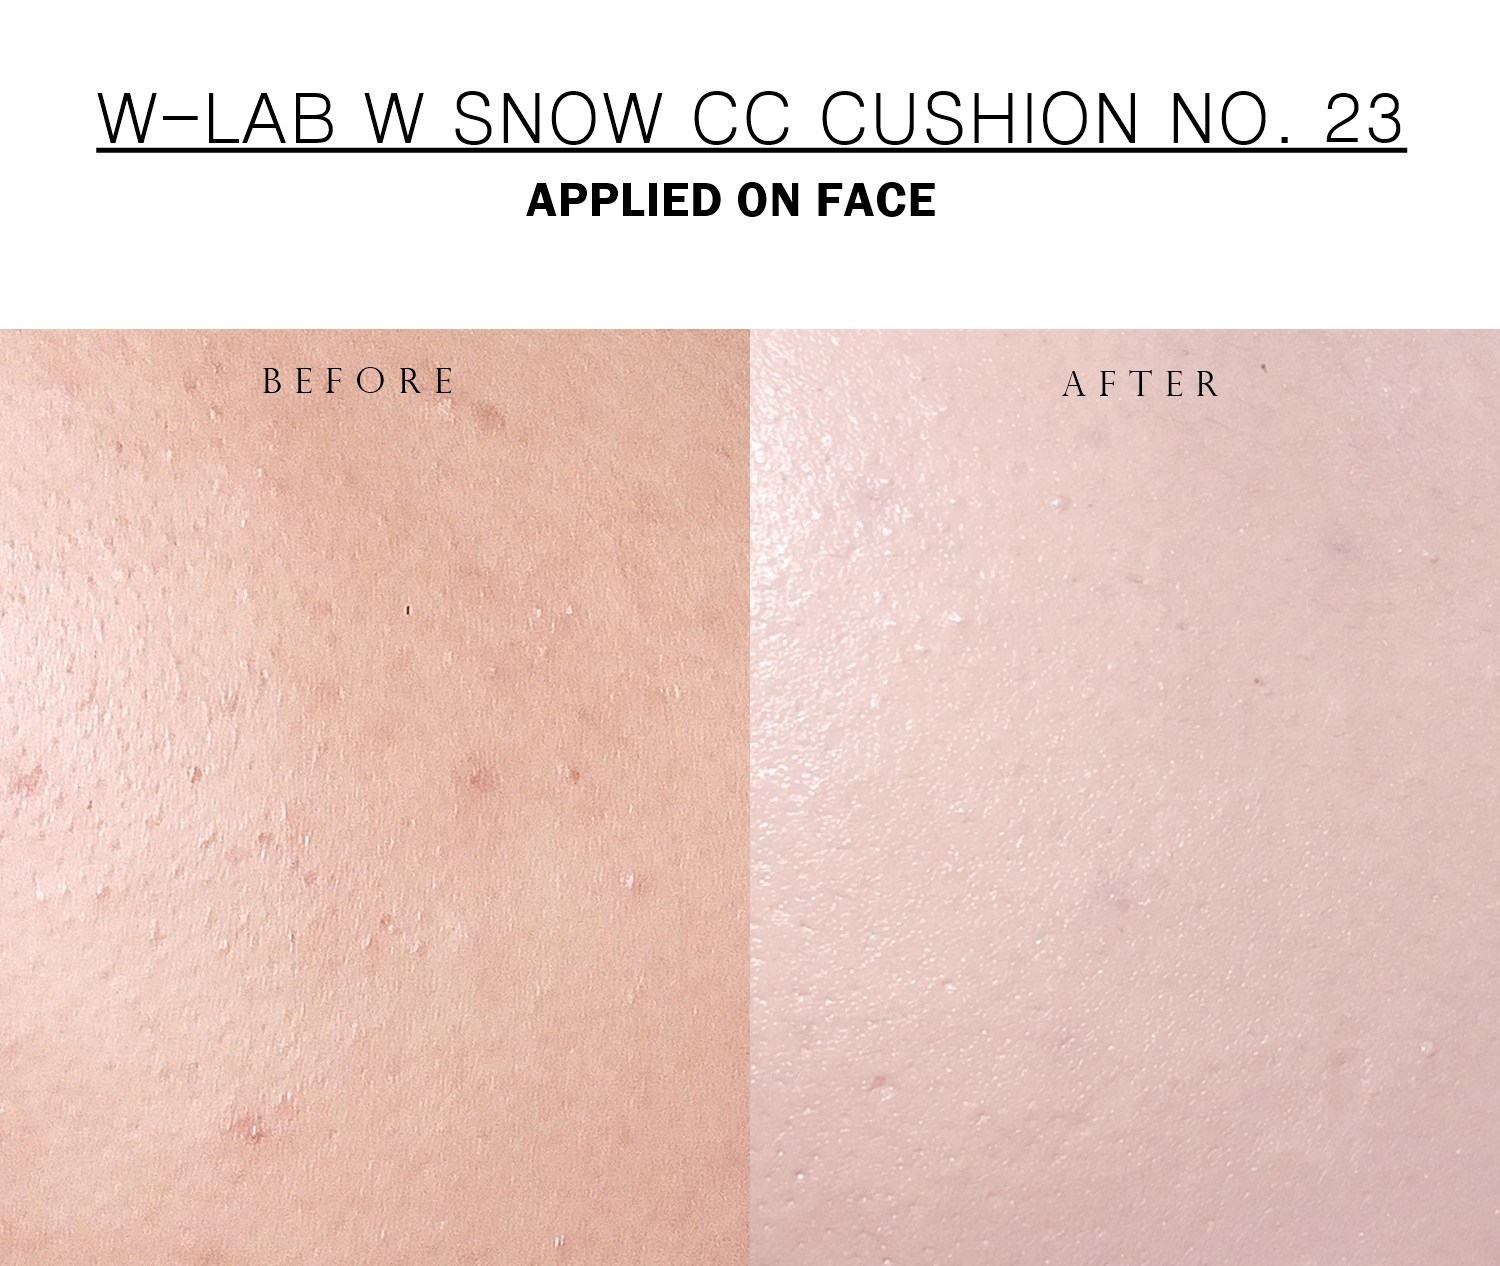 full-coverage-cushion, cushion-korea, wlab-cc-cushion-coverage